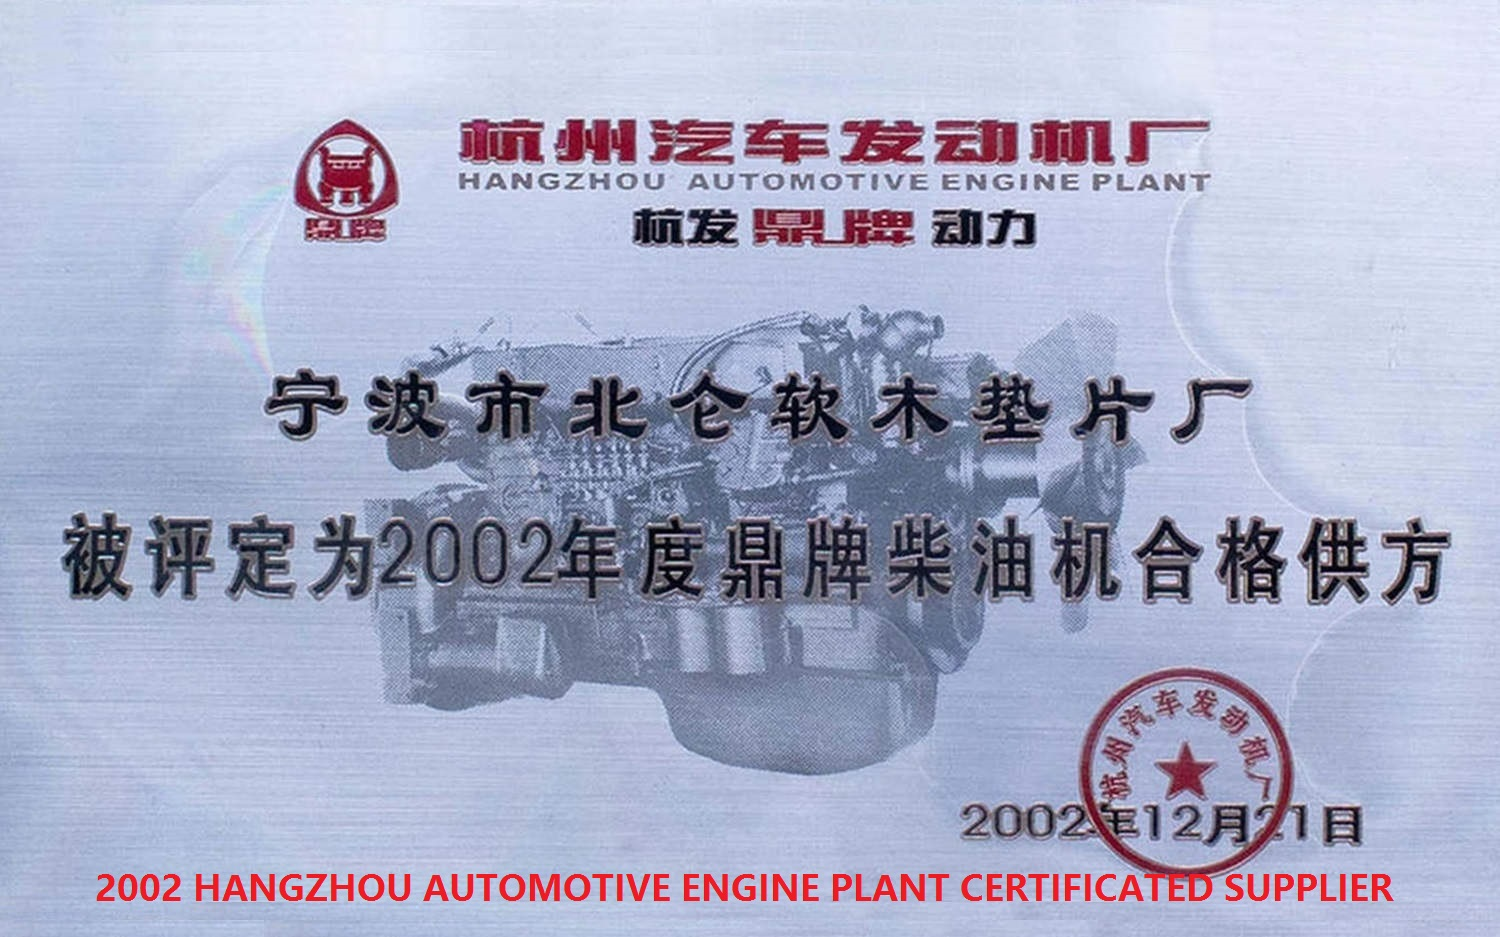 2002 HANGZHOU AUTOMOTIVE ENGINE PLANT CERTIFICATED SUPPLIER